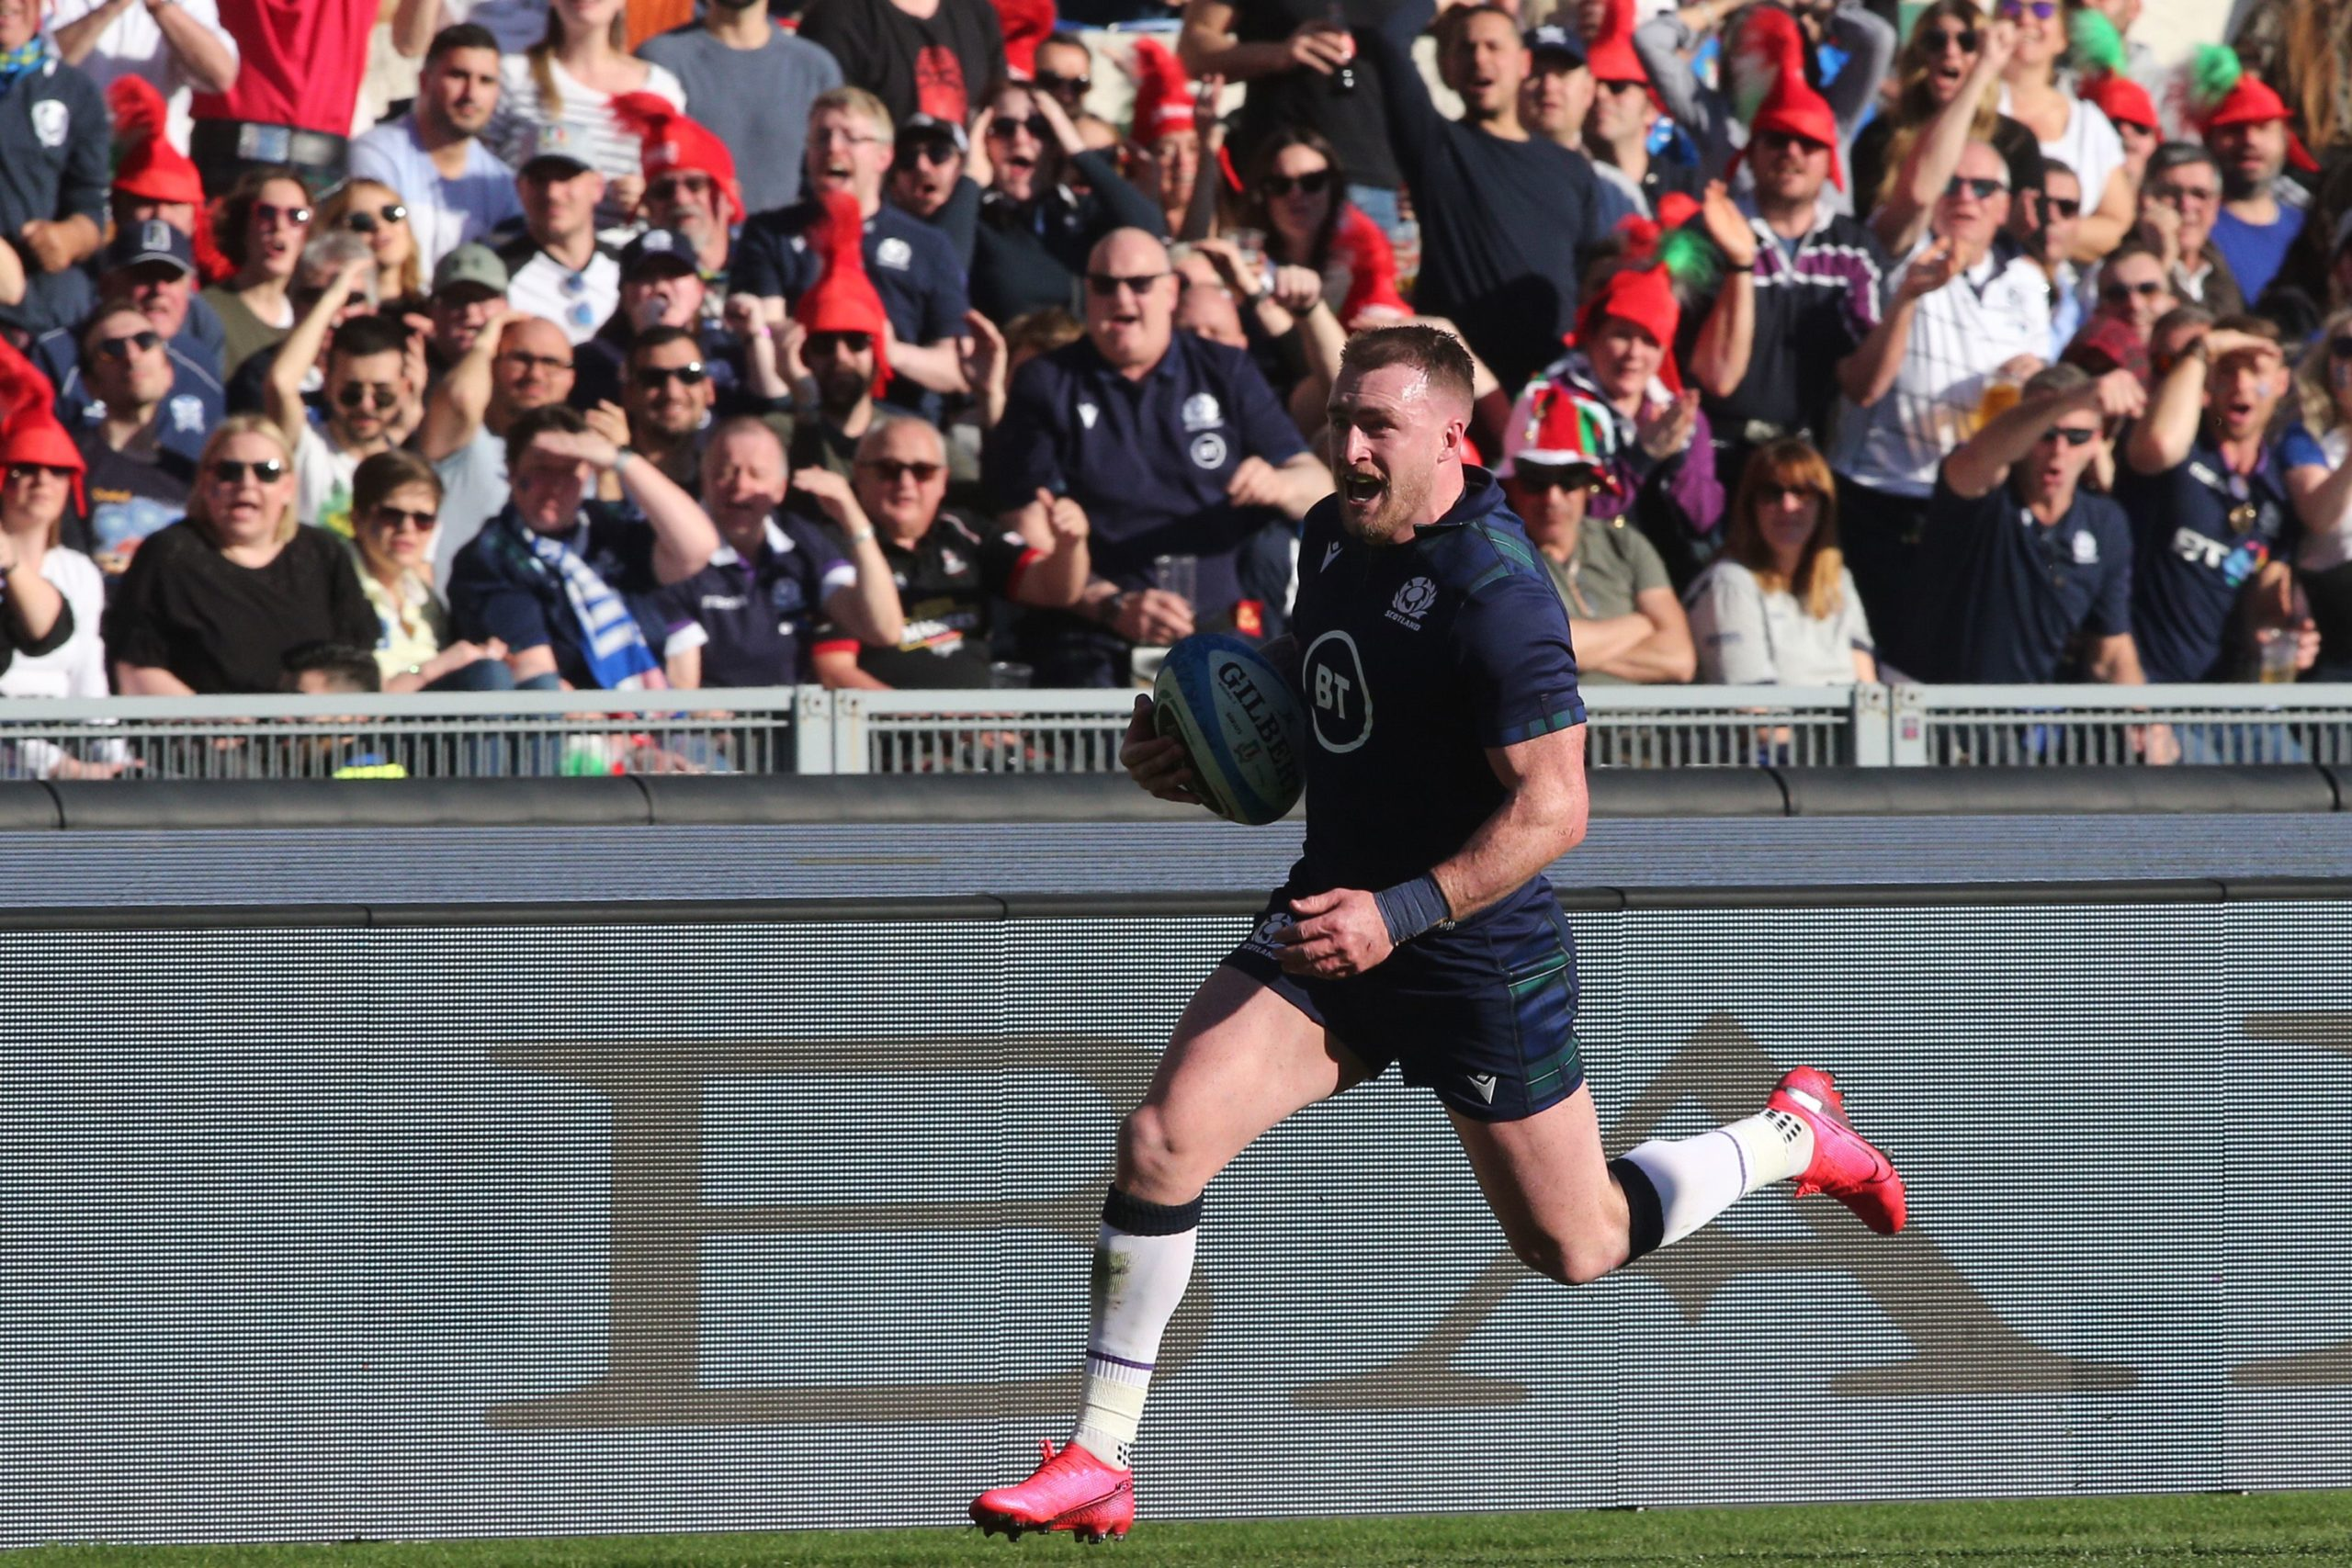 Scotland captain Stuart Hogg's brilliant solo try lit up a poor game in Rome.